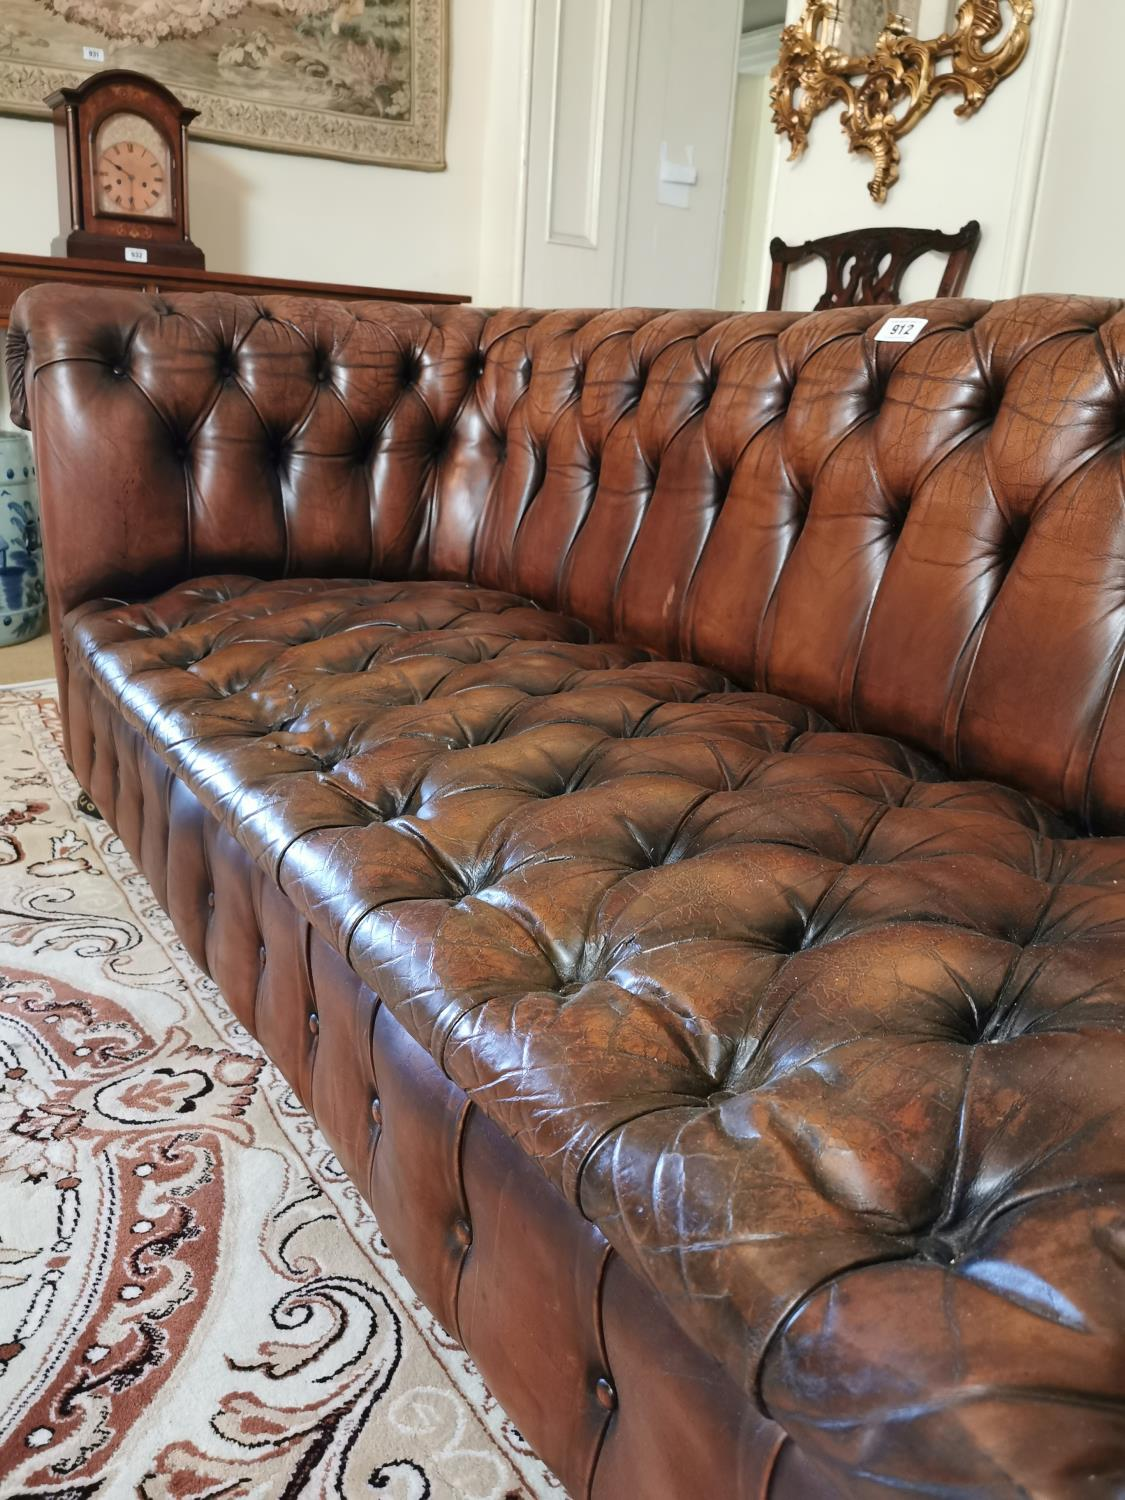 Hand dyed leather Chesterfield sofa. - Image 2 of 4